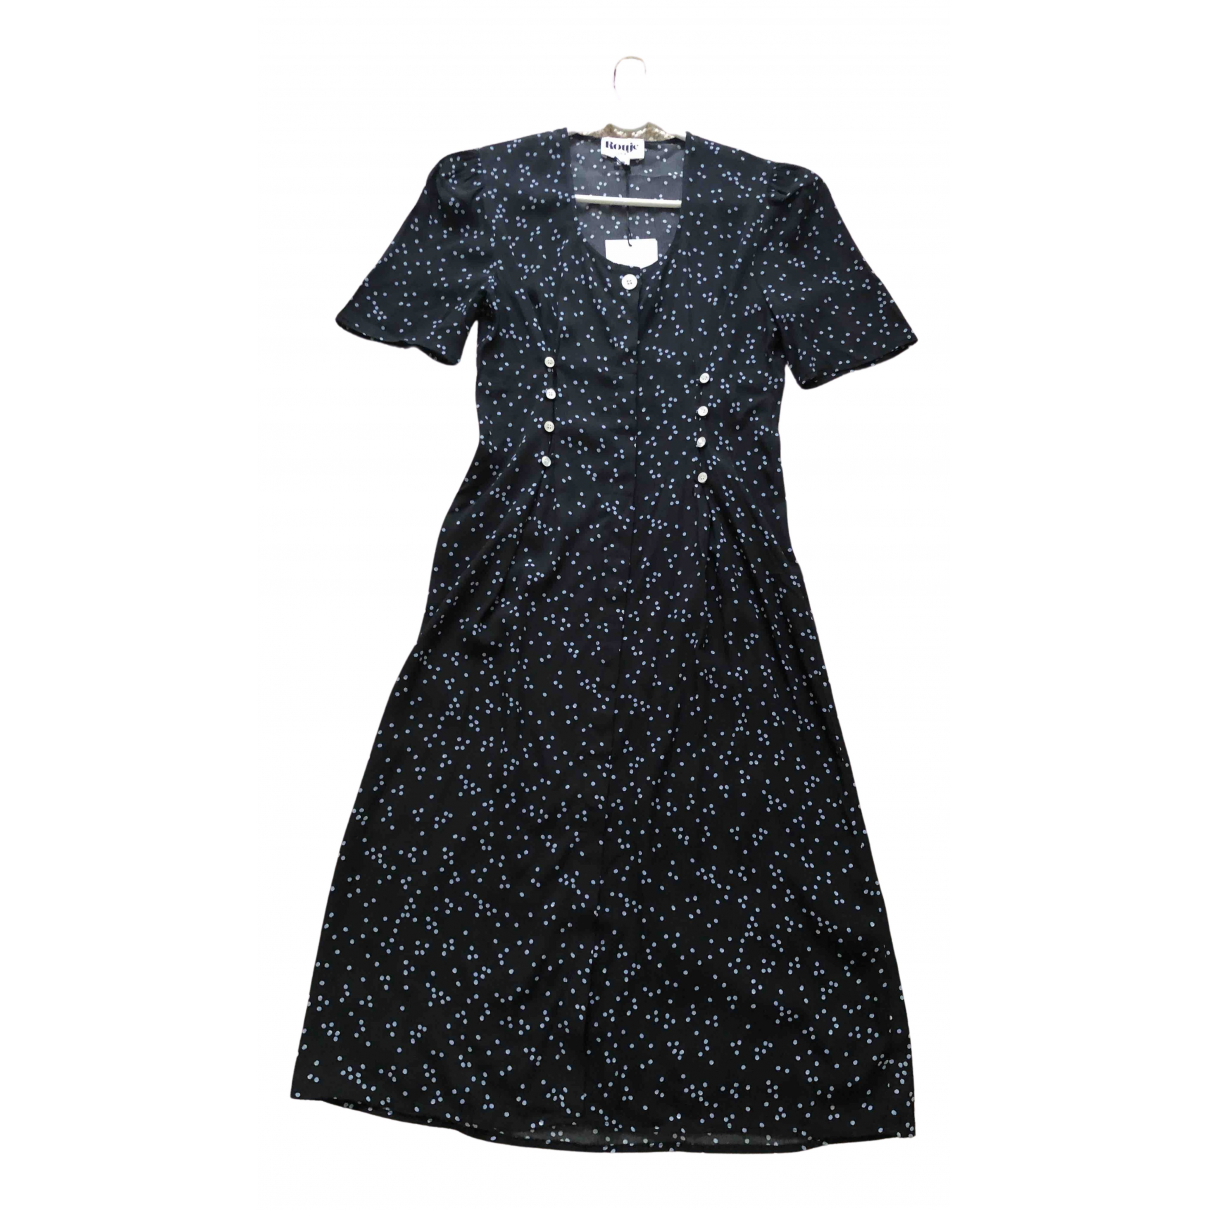 Rouje - Robe Spring Summer 2020 pour femme - marine